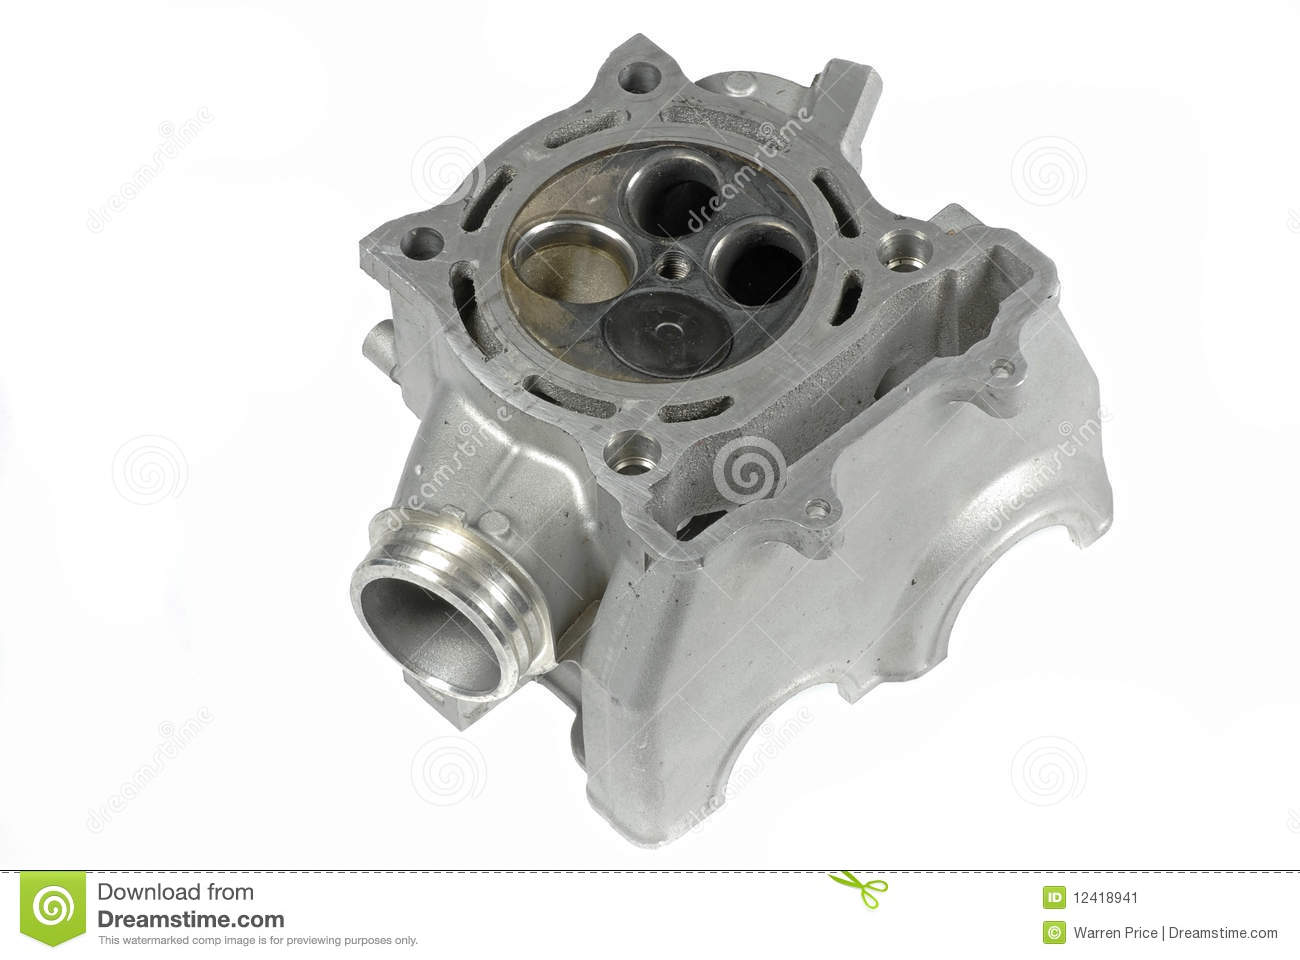 Motorcycle Cylinder Head : Motorcycle cylinder head bottom view stock image